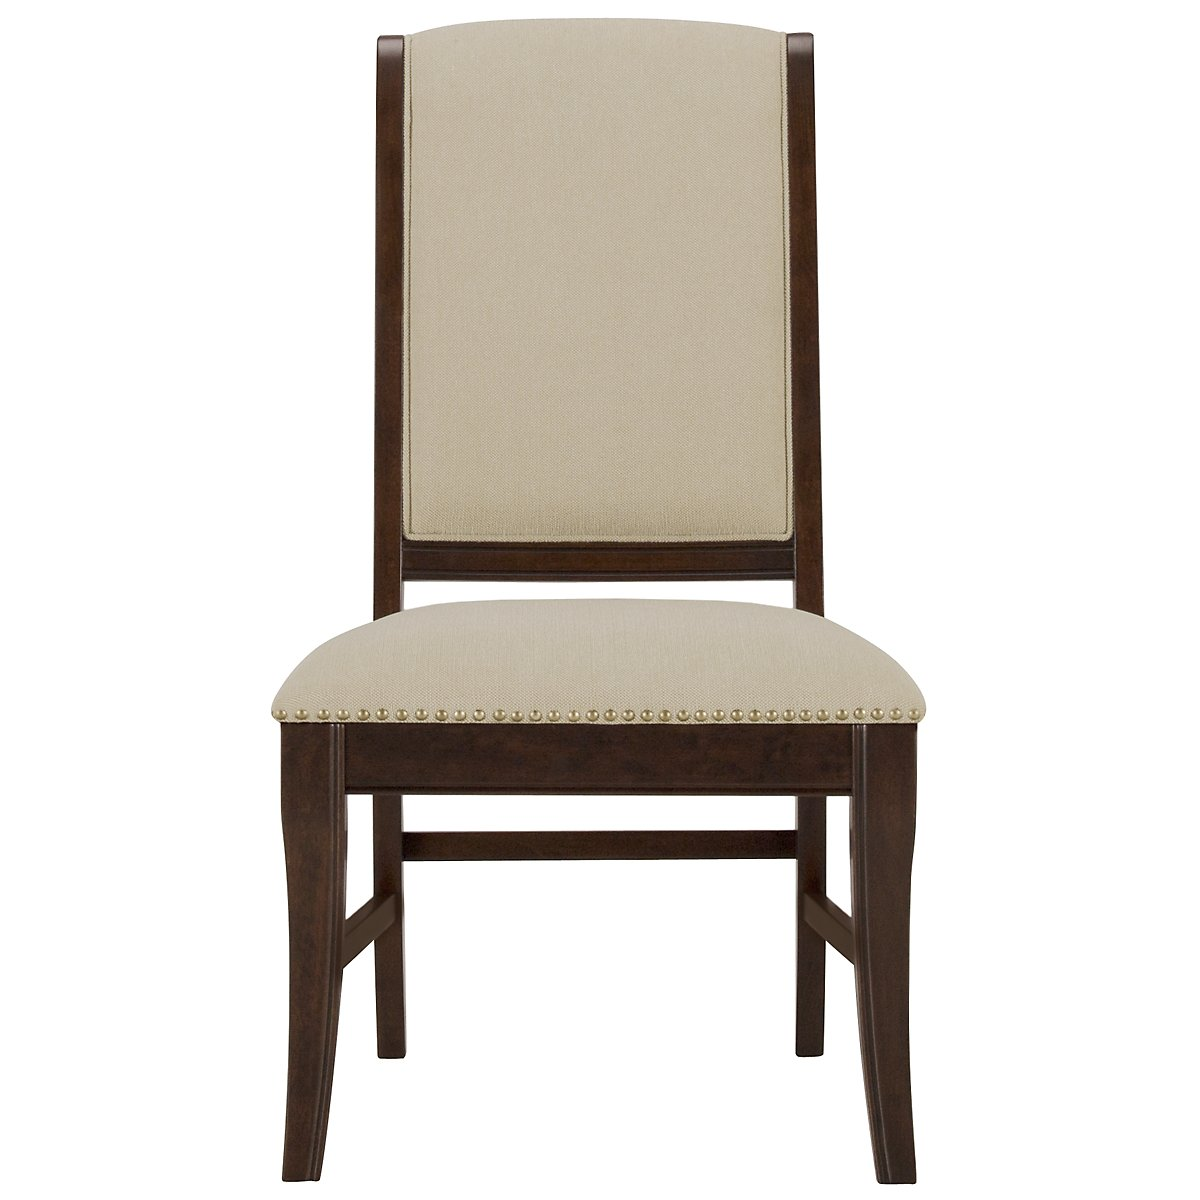 City Furniture Canyon Mid Tone Upholstered Side Chair